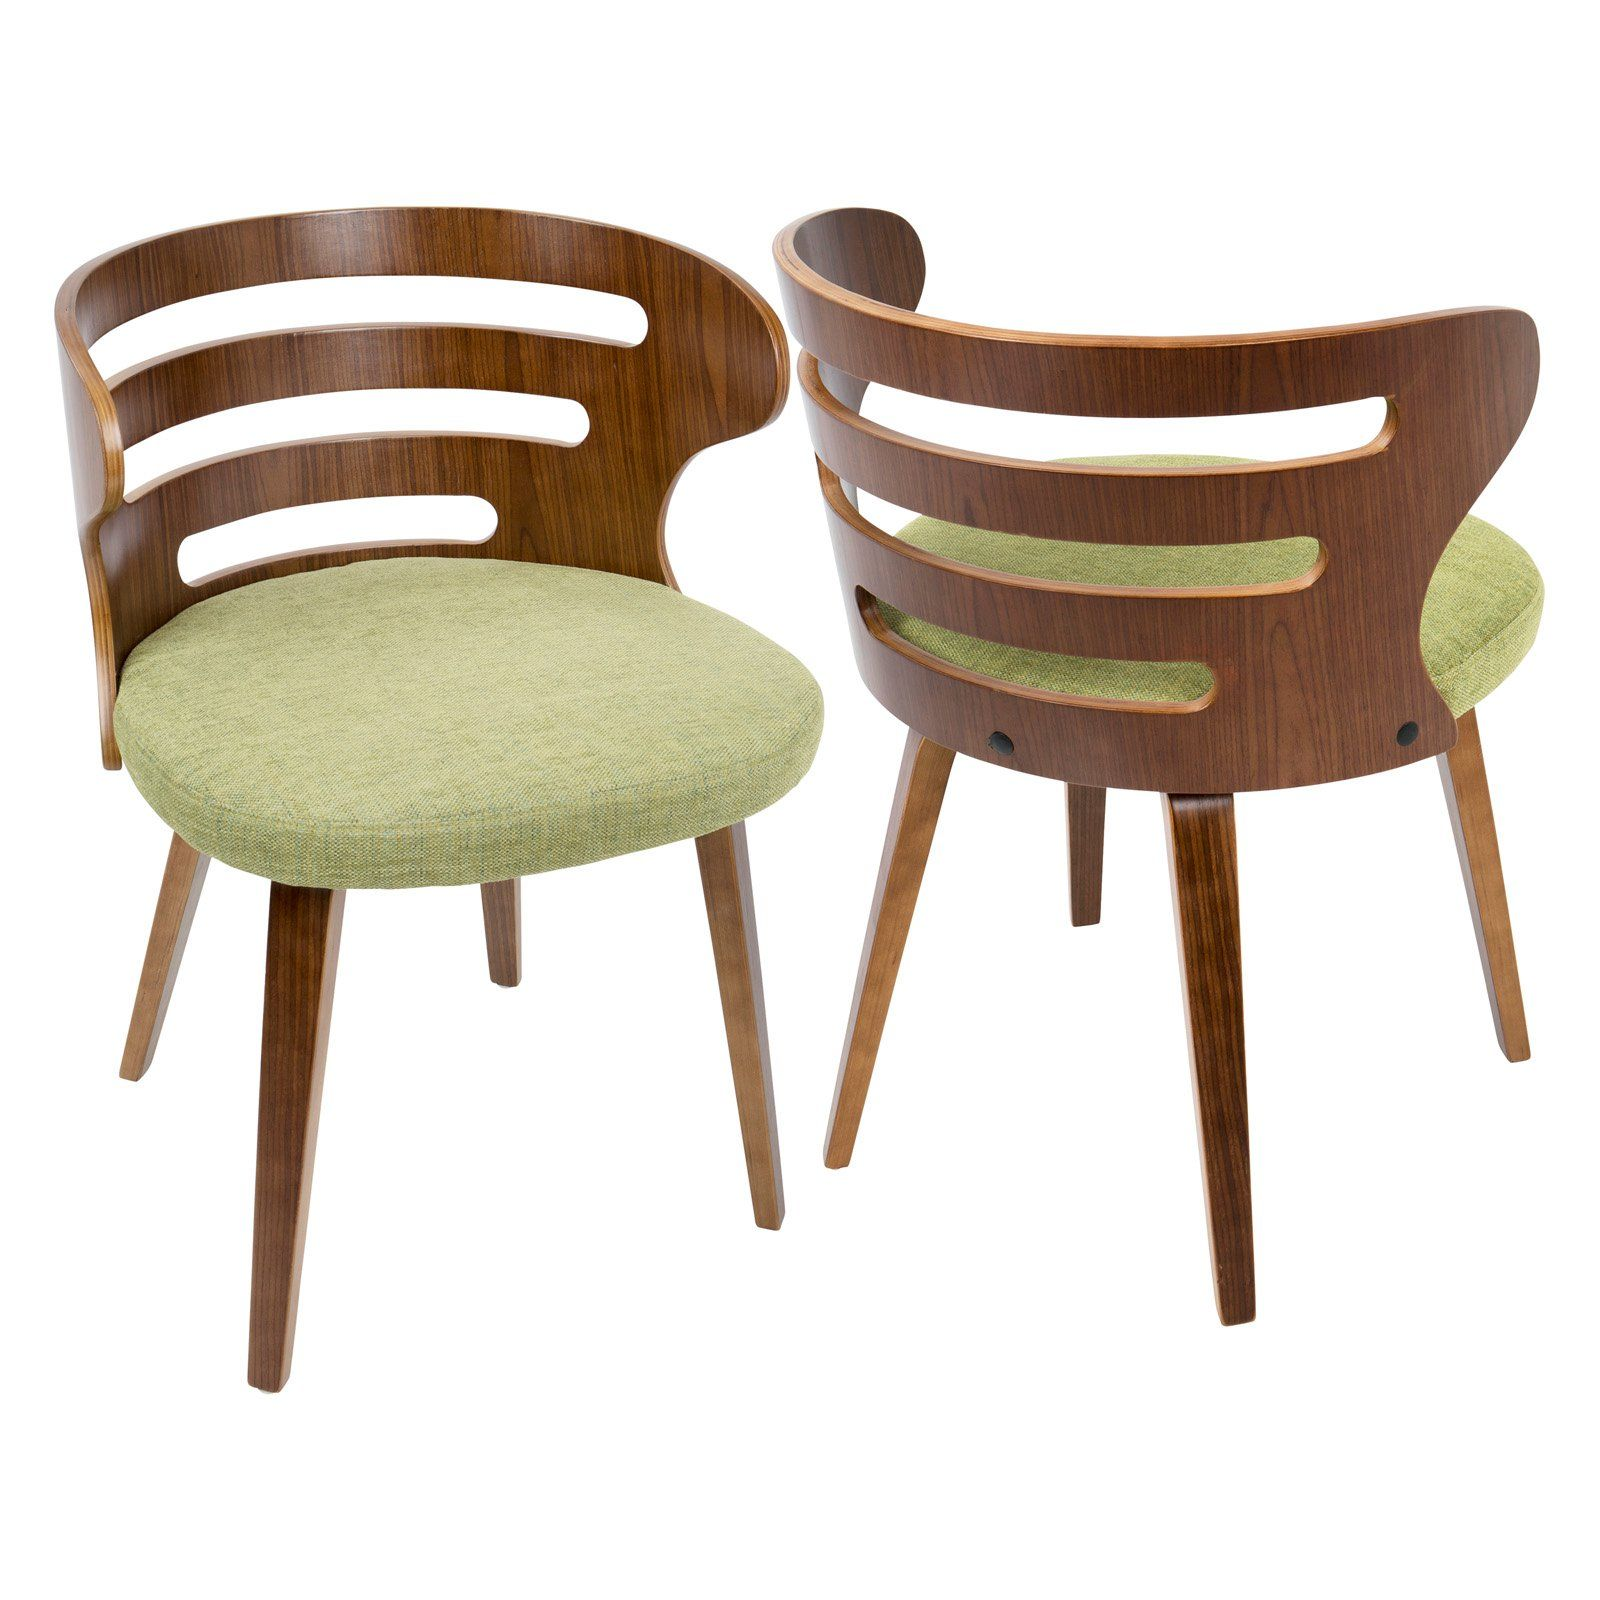 Terrific Lumisource Cosi Mid Century Modern Fabric Dining Chair Green Ibusinesslaw Wood Chair Design Ideas Ibusinesslaworg